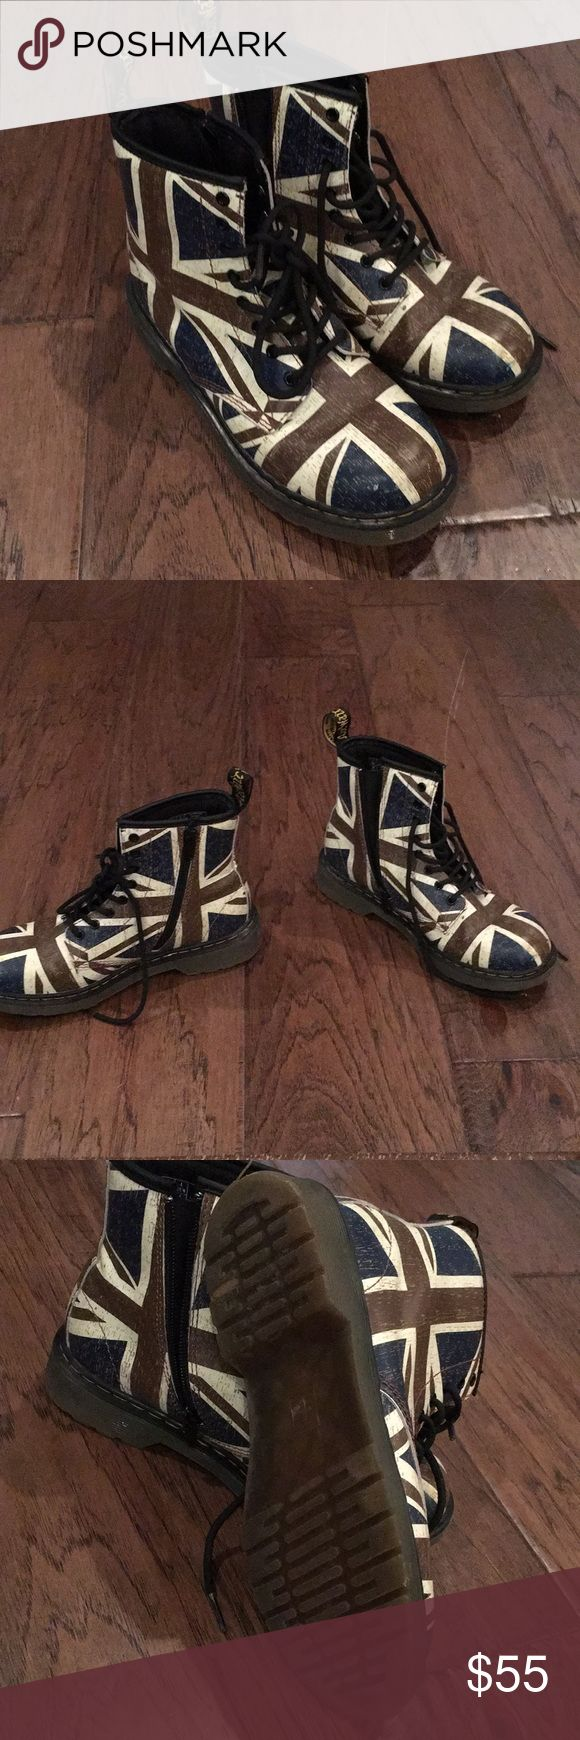 British flag Dr. Martens My total faves!  Just sit in the closet, my loss is your gain. So easy to get on with the zipper on the side. Boot says it's a men's 4 and a ladies 5, but those aren't accurate, it fits like a 5.5 in ladies Dr. Martens Shoes Lace Up Boots